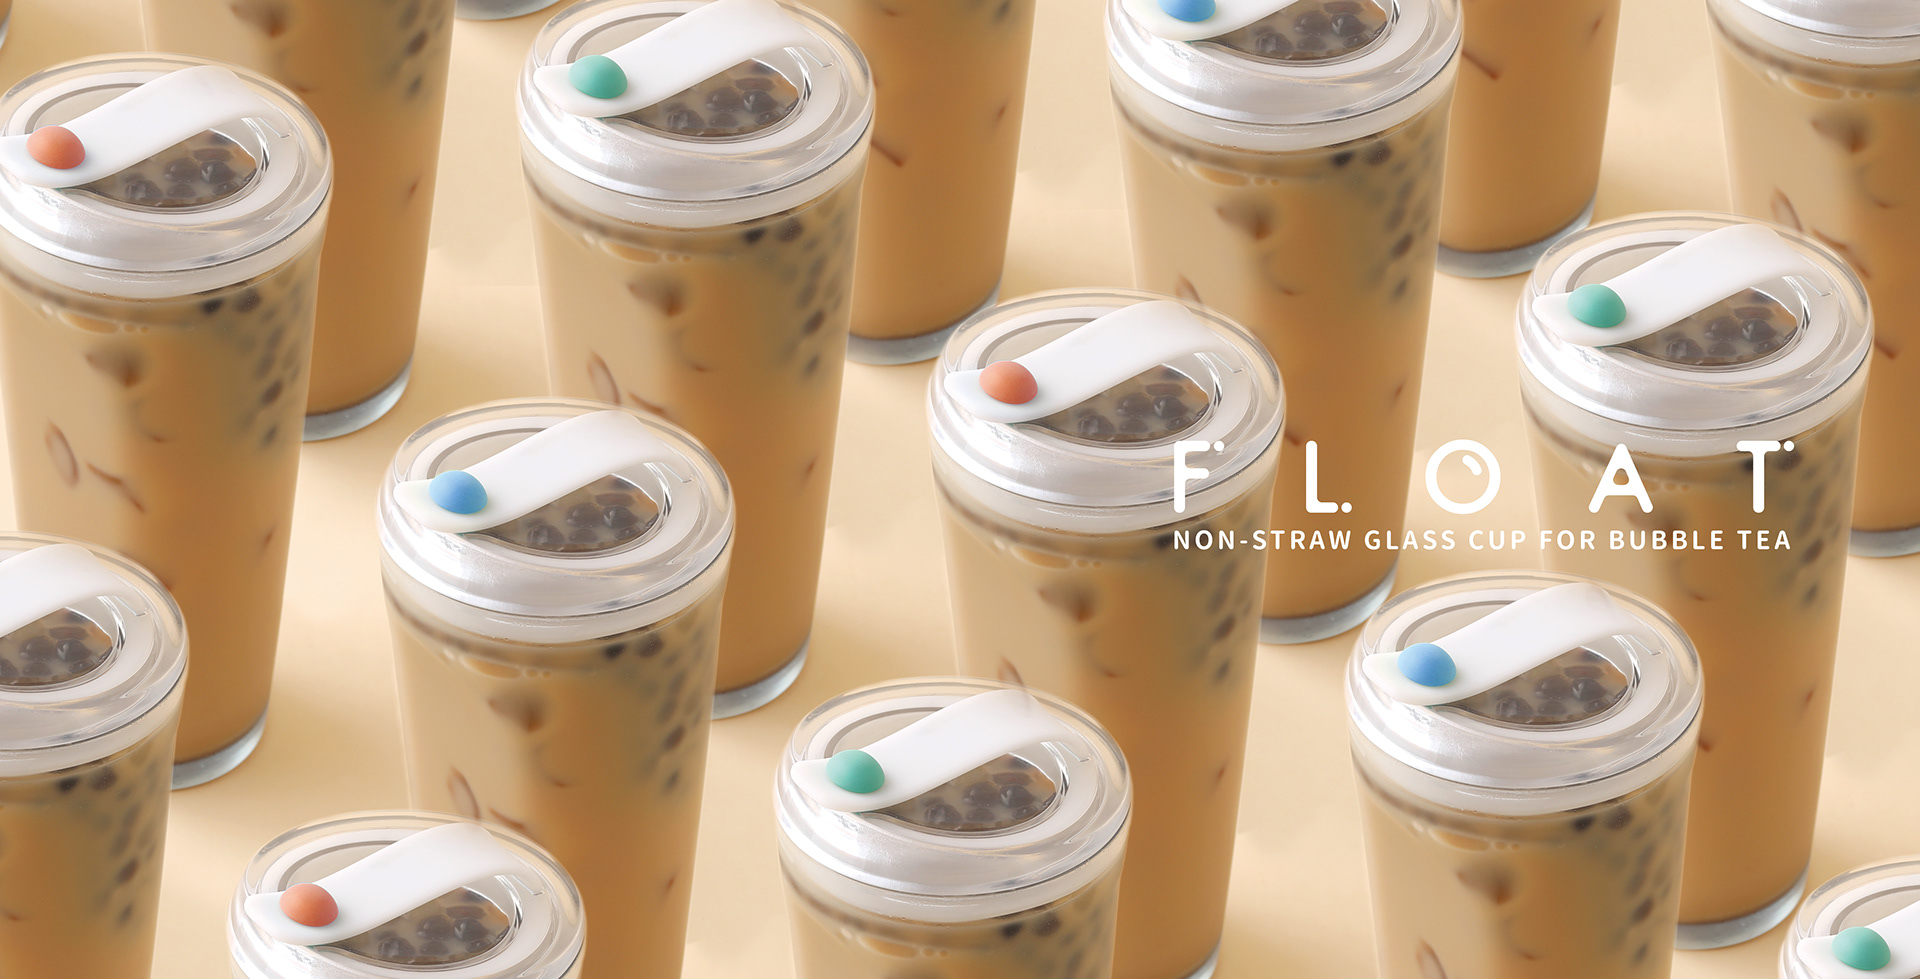 Reinventing the Bubble Tea Glass Cup, no straw needed.